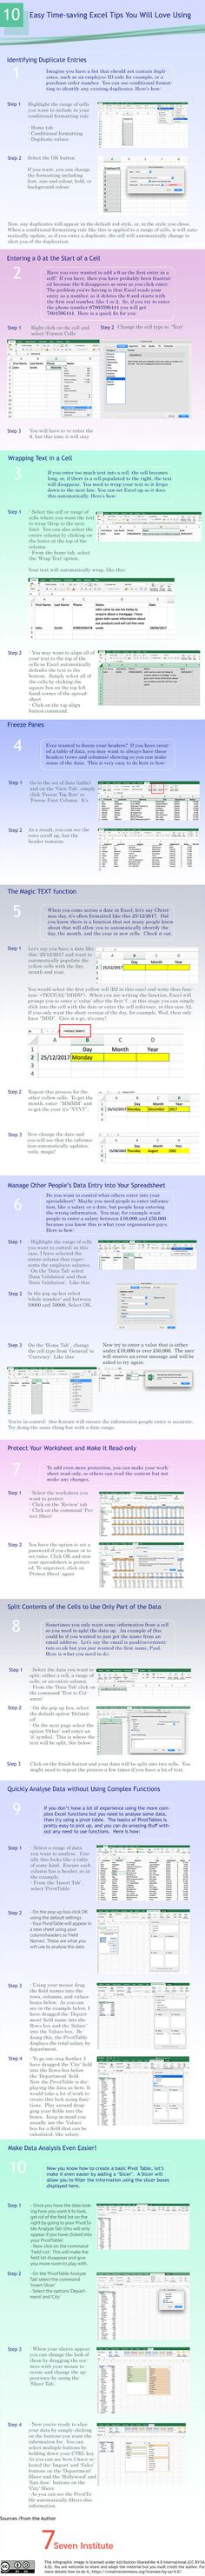 We all have our favorite Excel tricks. Do you know all 10 time-saving tips explained in this infographic? You& see basics (like wrapping text) and more complex ones (like slicing pivot tables). Computer Programming, Computer Science, Computer Tips, Decimal, Saving Tips, Time Saving, Pivot Table, Executive Resume, Work Goals